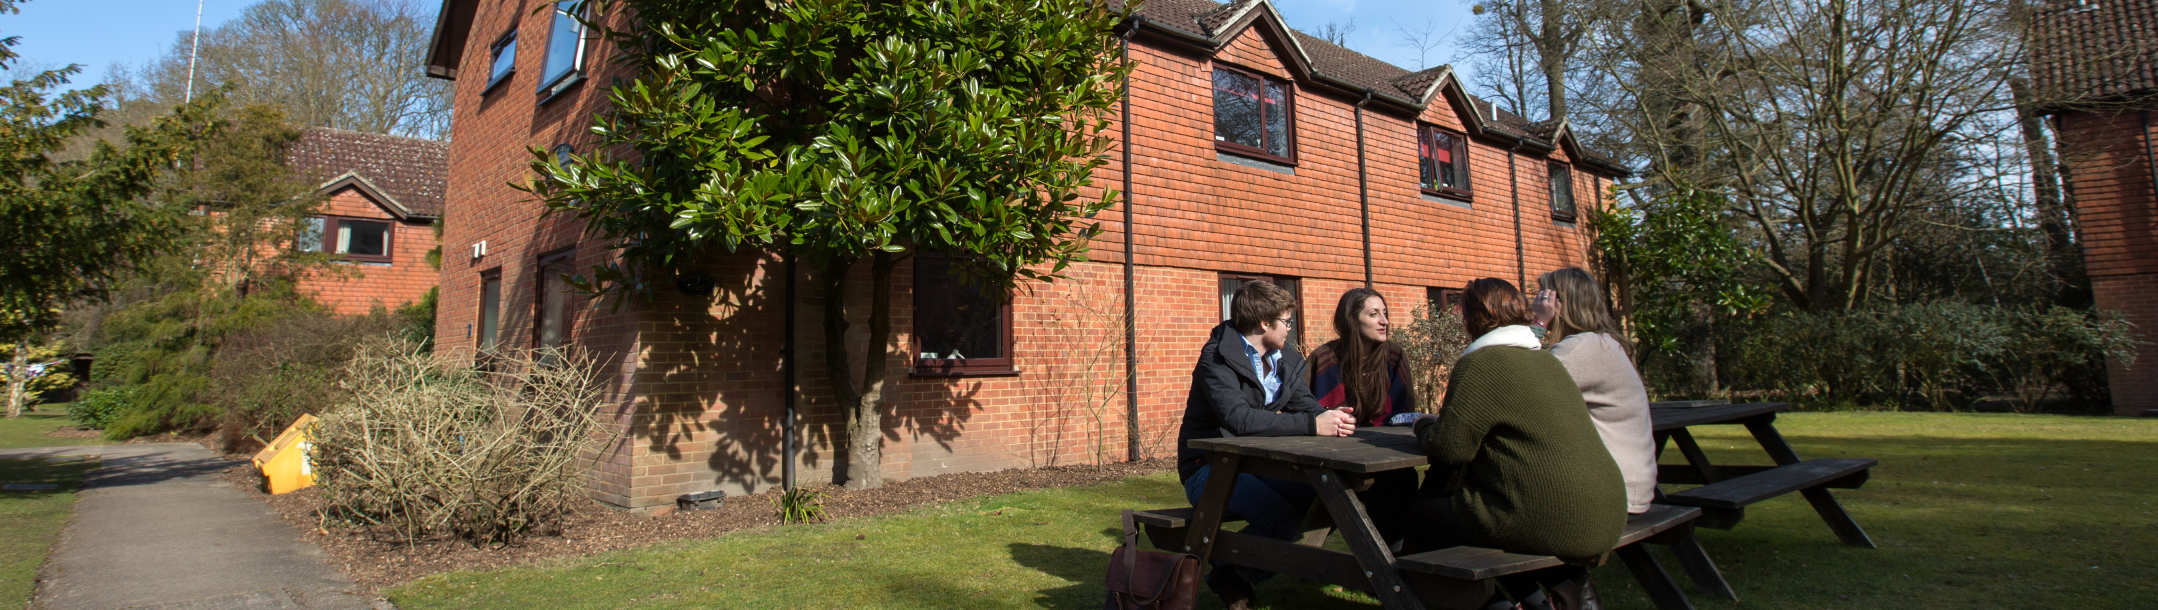 Postgraduate in SIlwood Park Campus